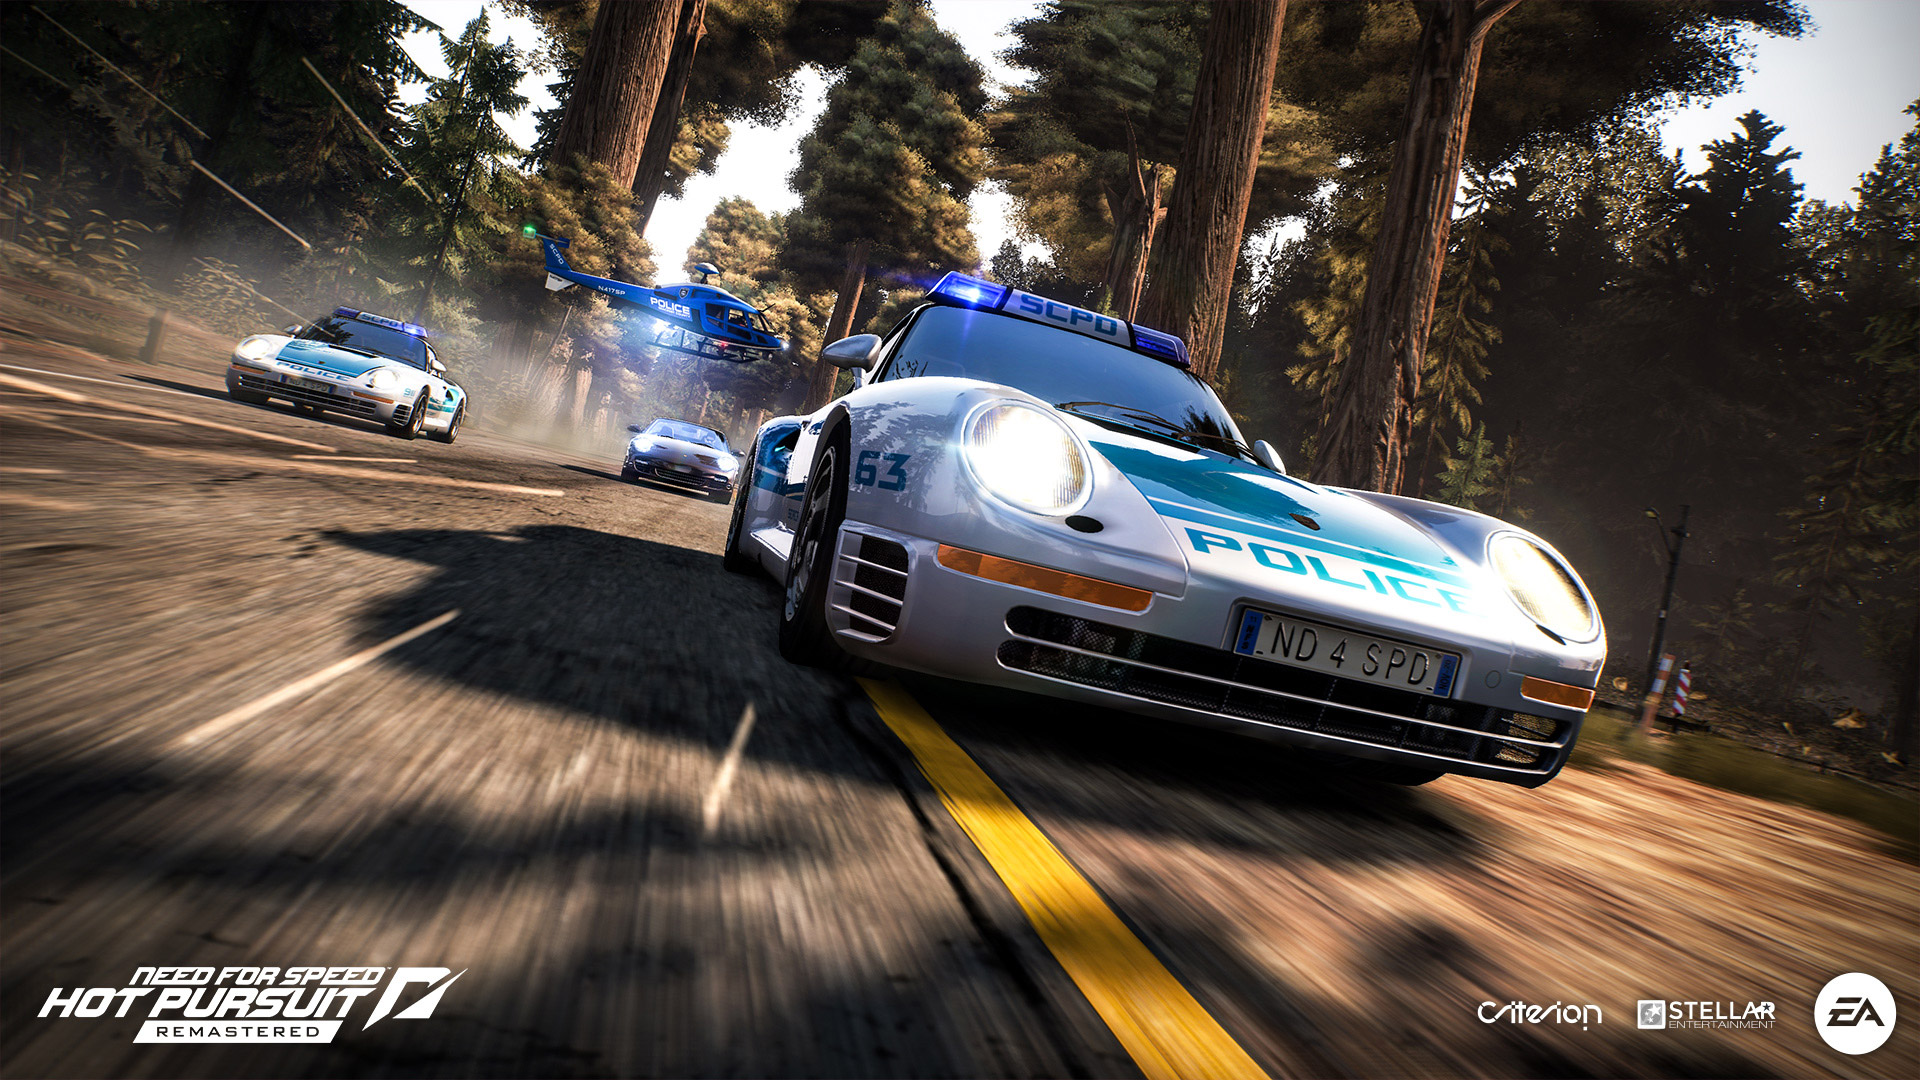 Free Need for Speed: Hot Pursuit Wallpaper in 1920x1080